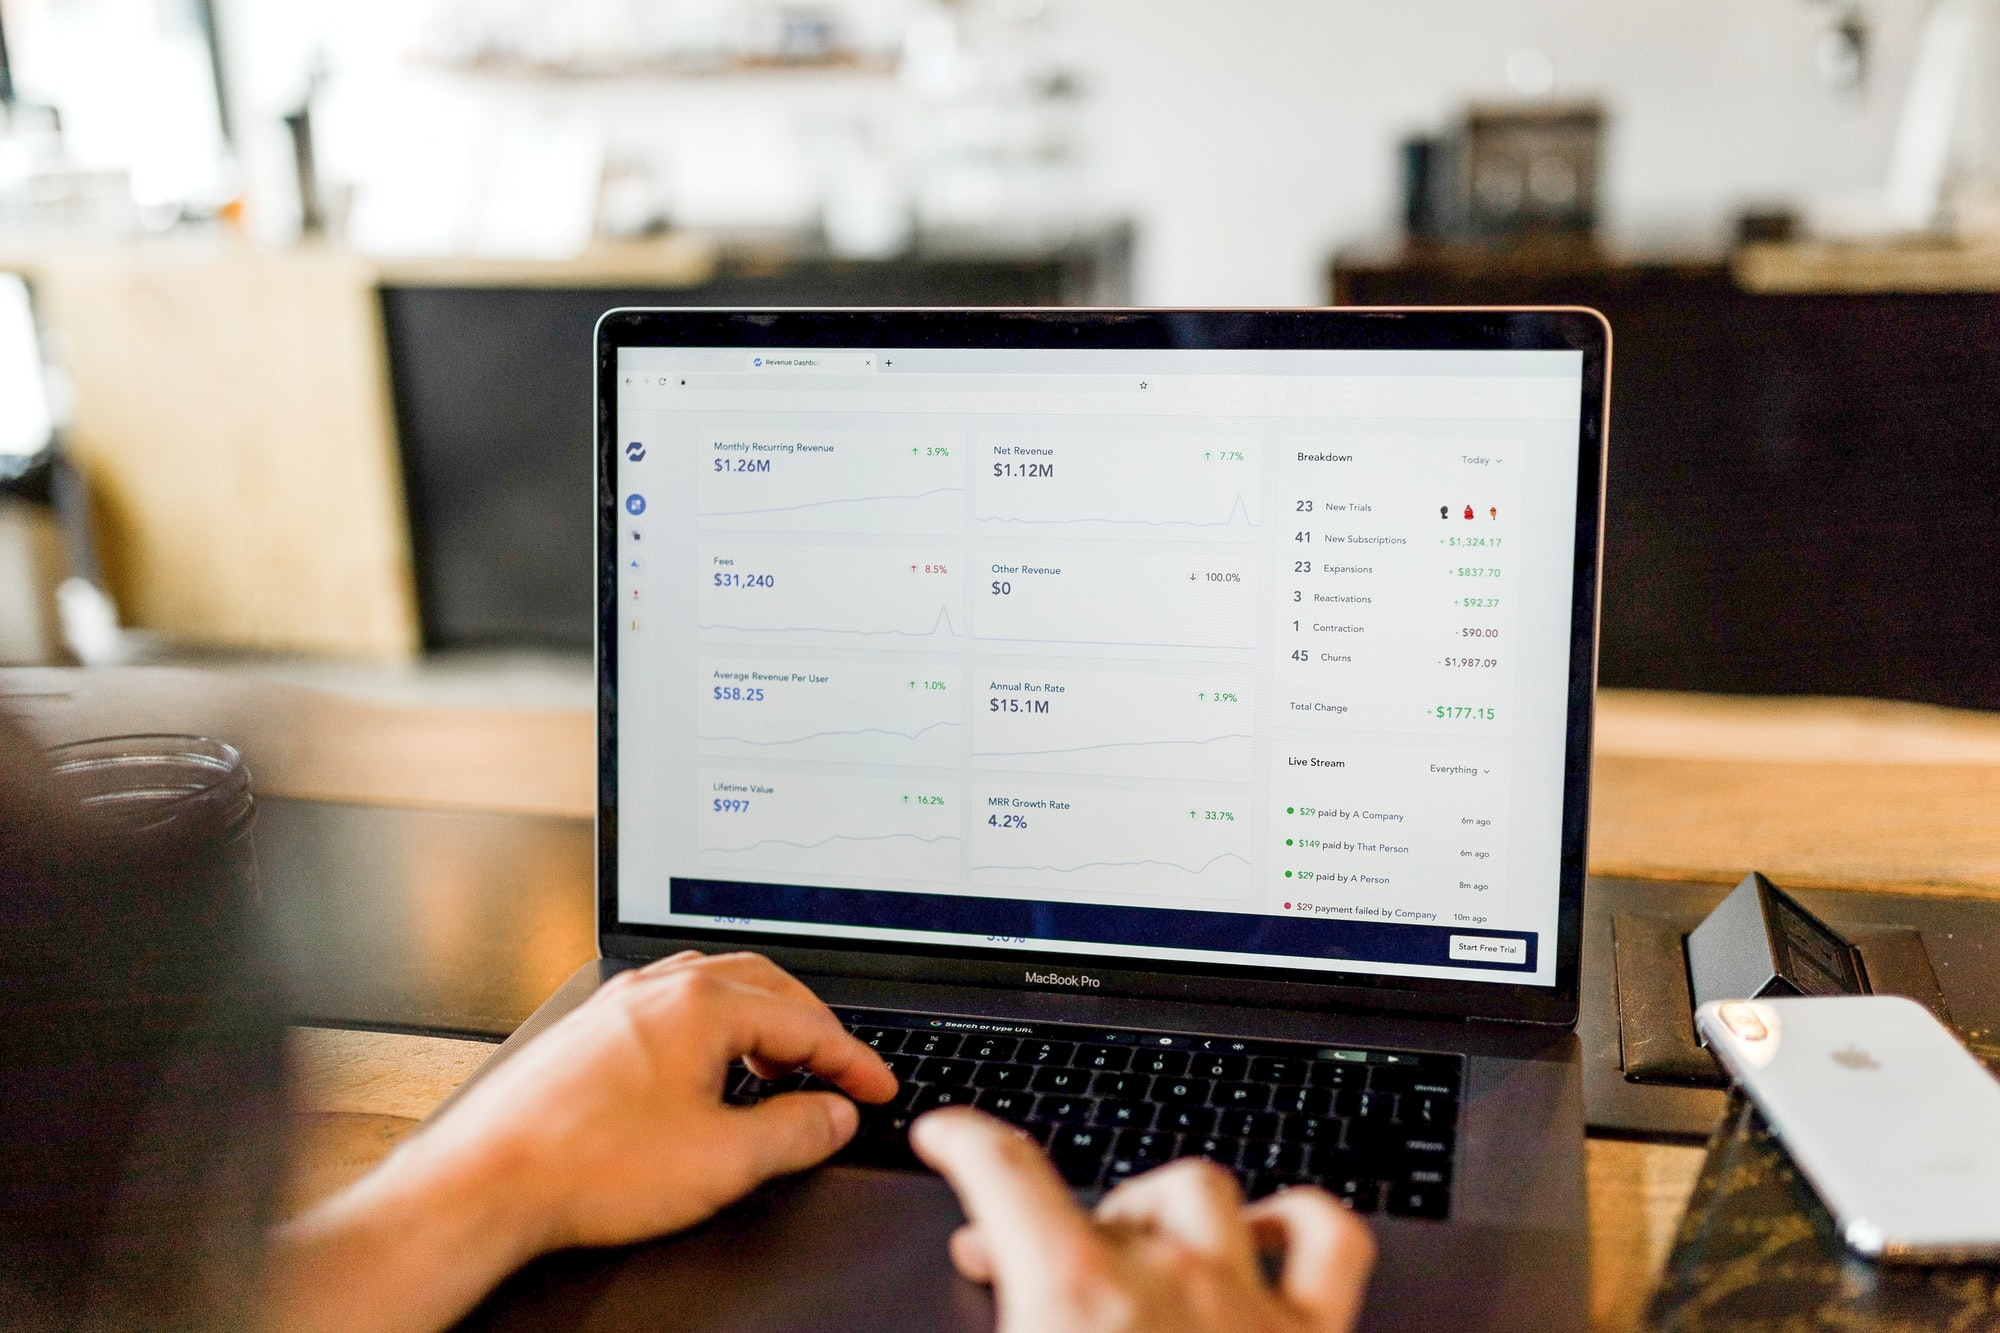 When should I start earning money with my product/service?